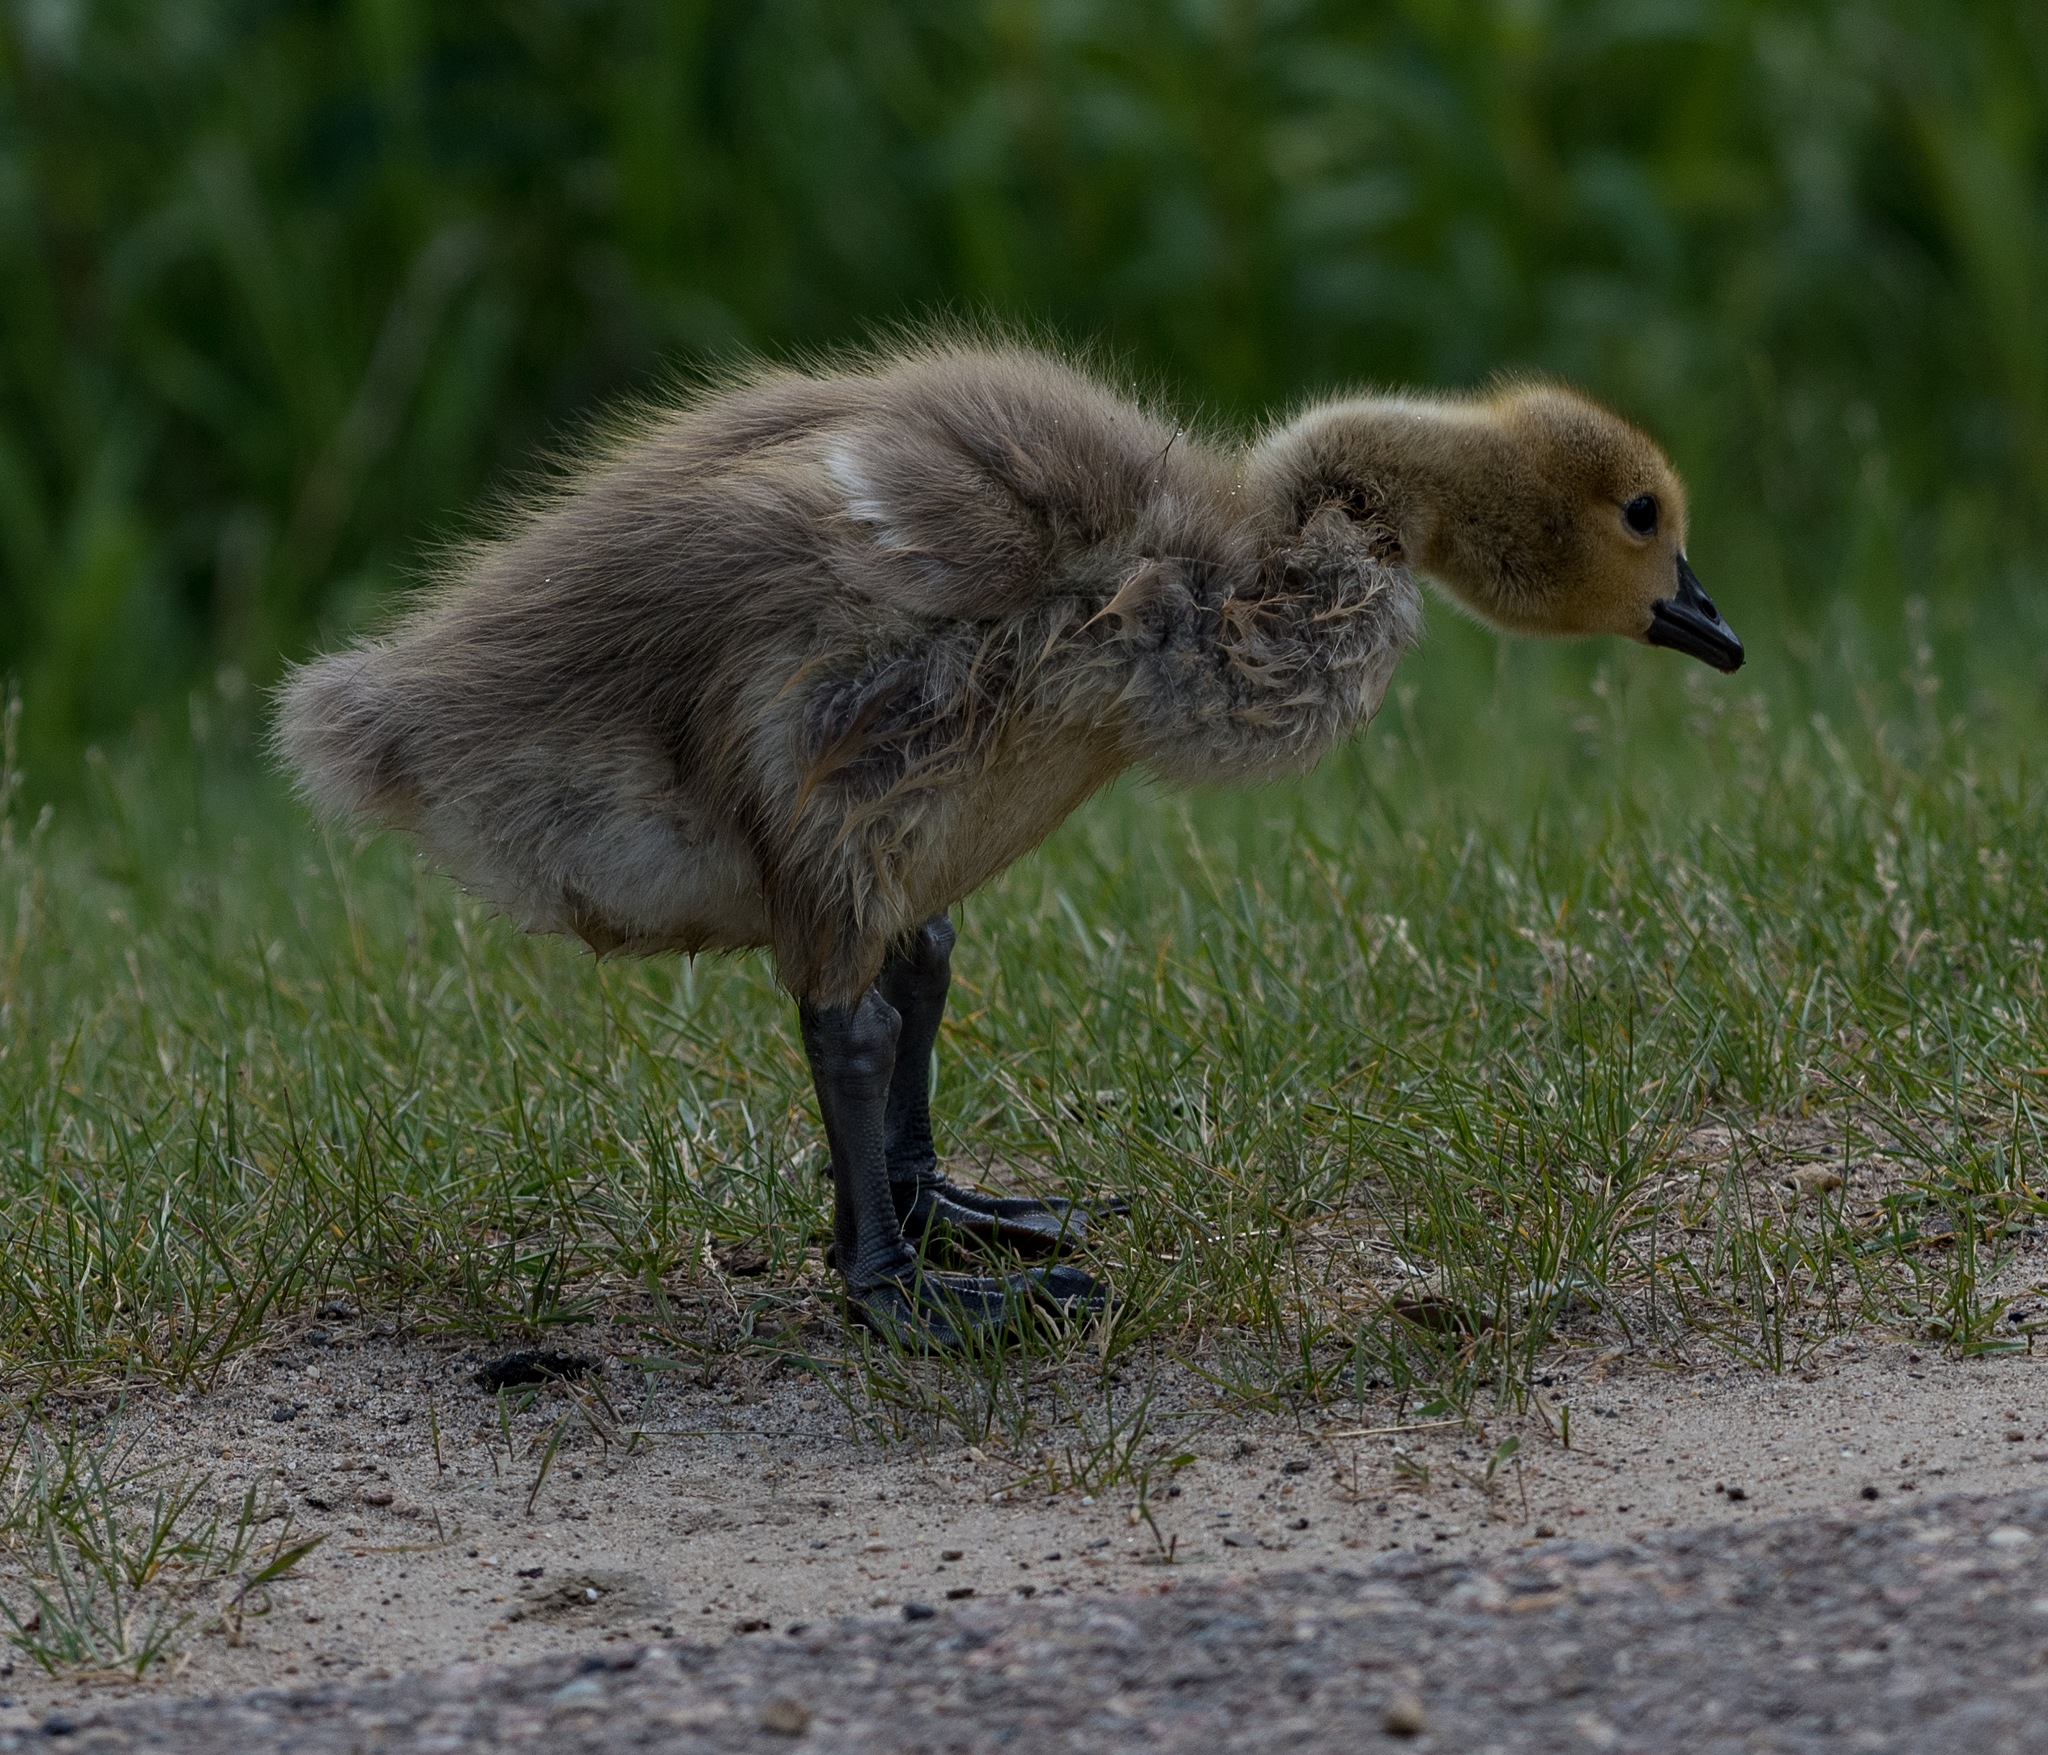 ANOTHER CANADA GOSLING by DrJohnHodgson